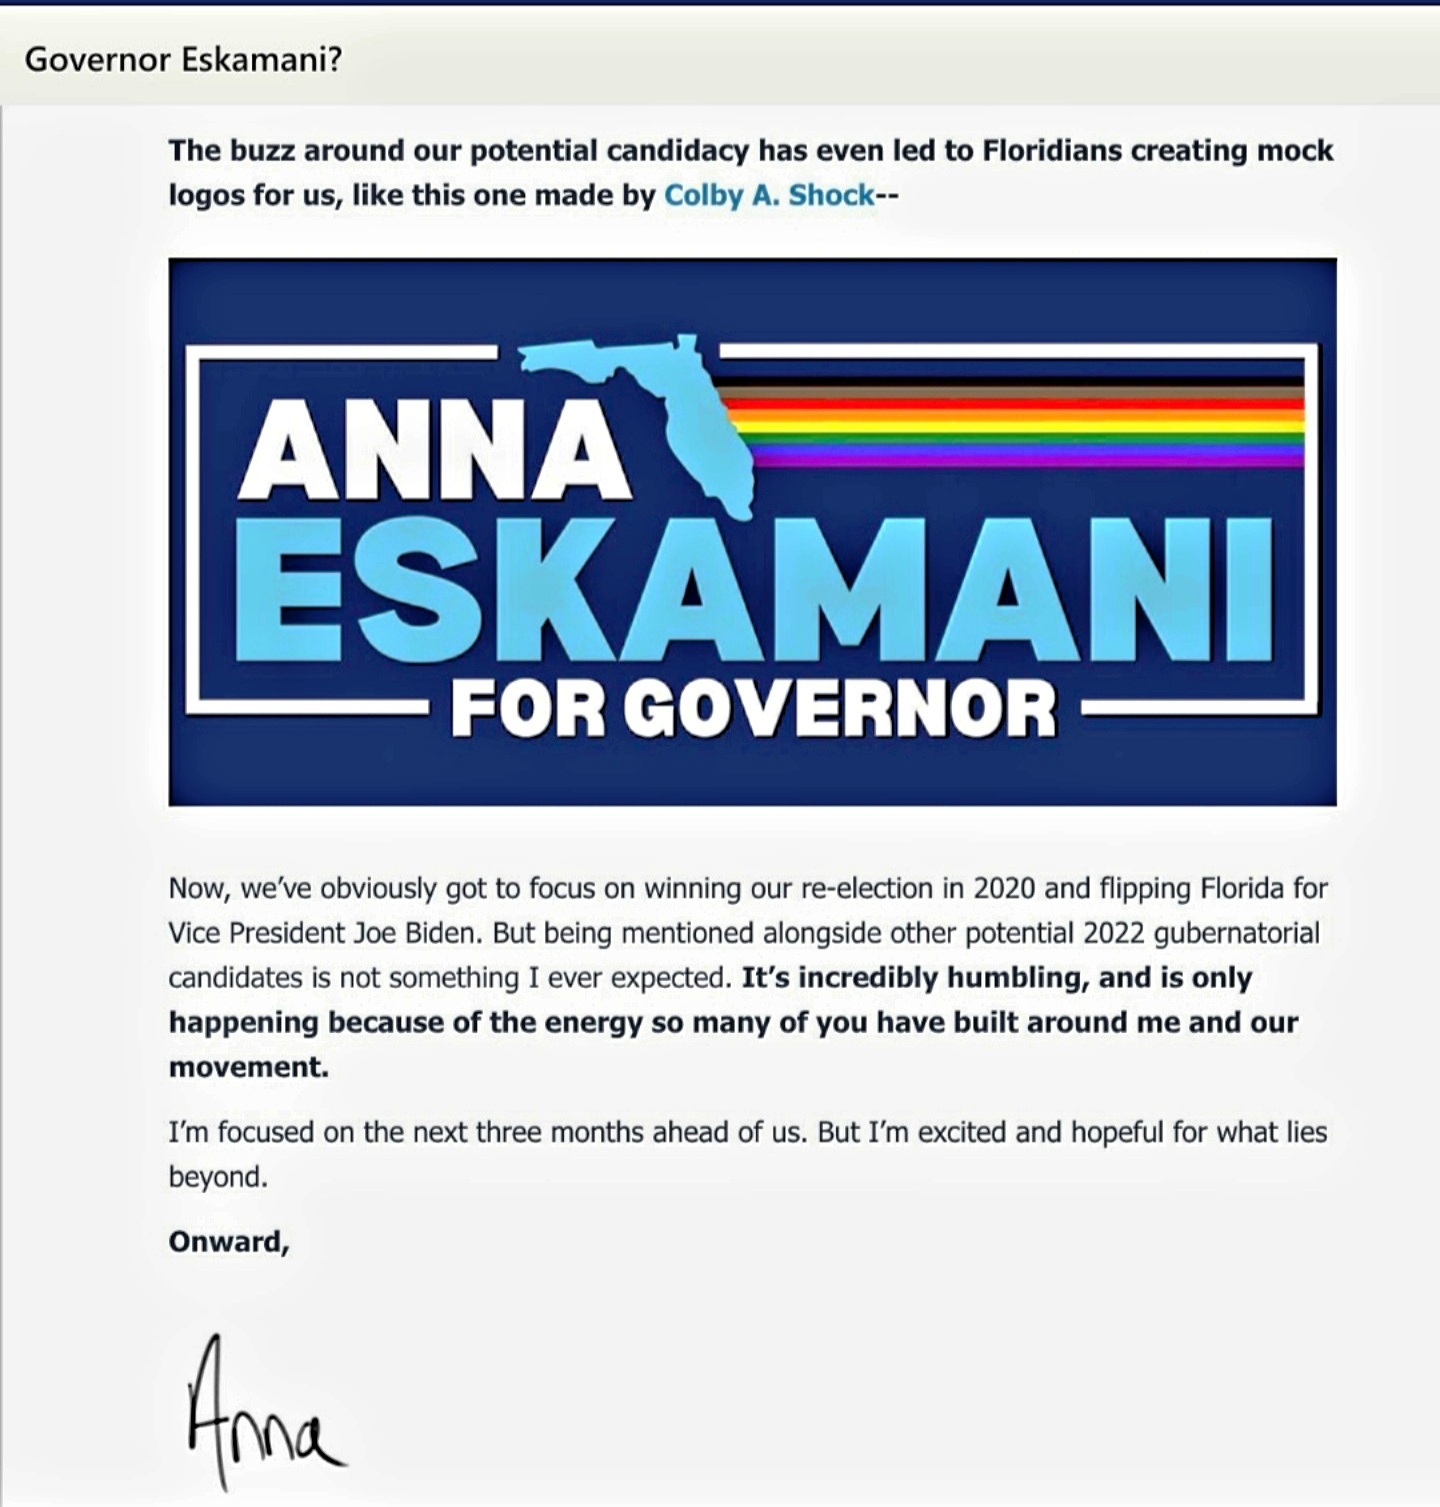 Eskamani for Governor?